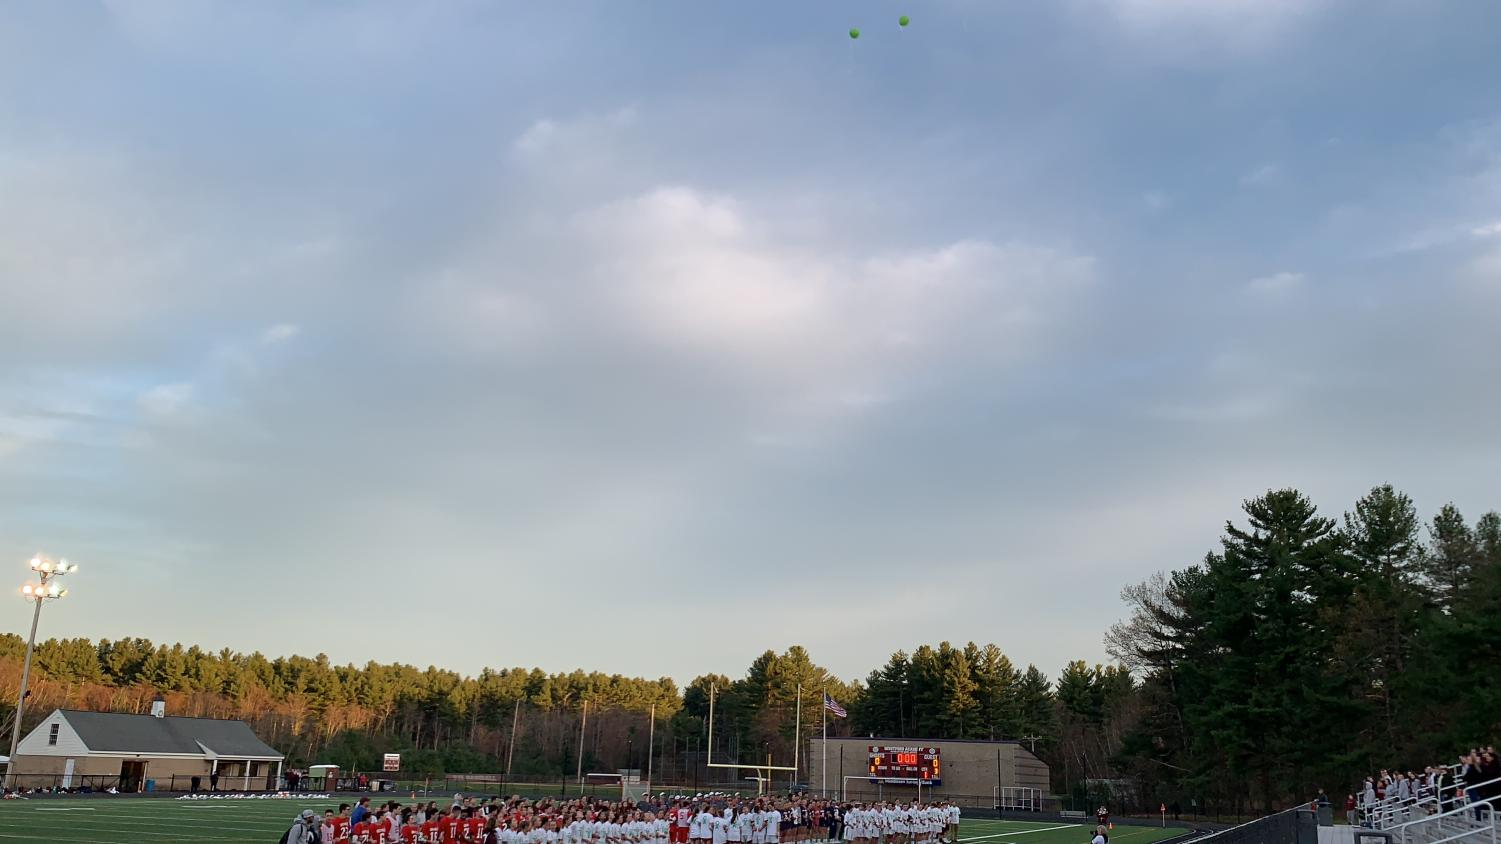 Westford+Academy+teams+release+balloons+in+support+for+Mental+Health+awareness.+Two+balloons+can+be+seen+floating+away.